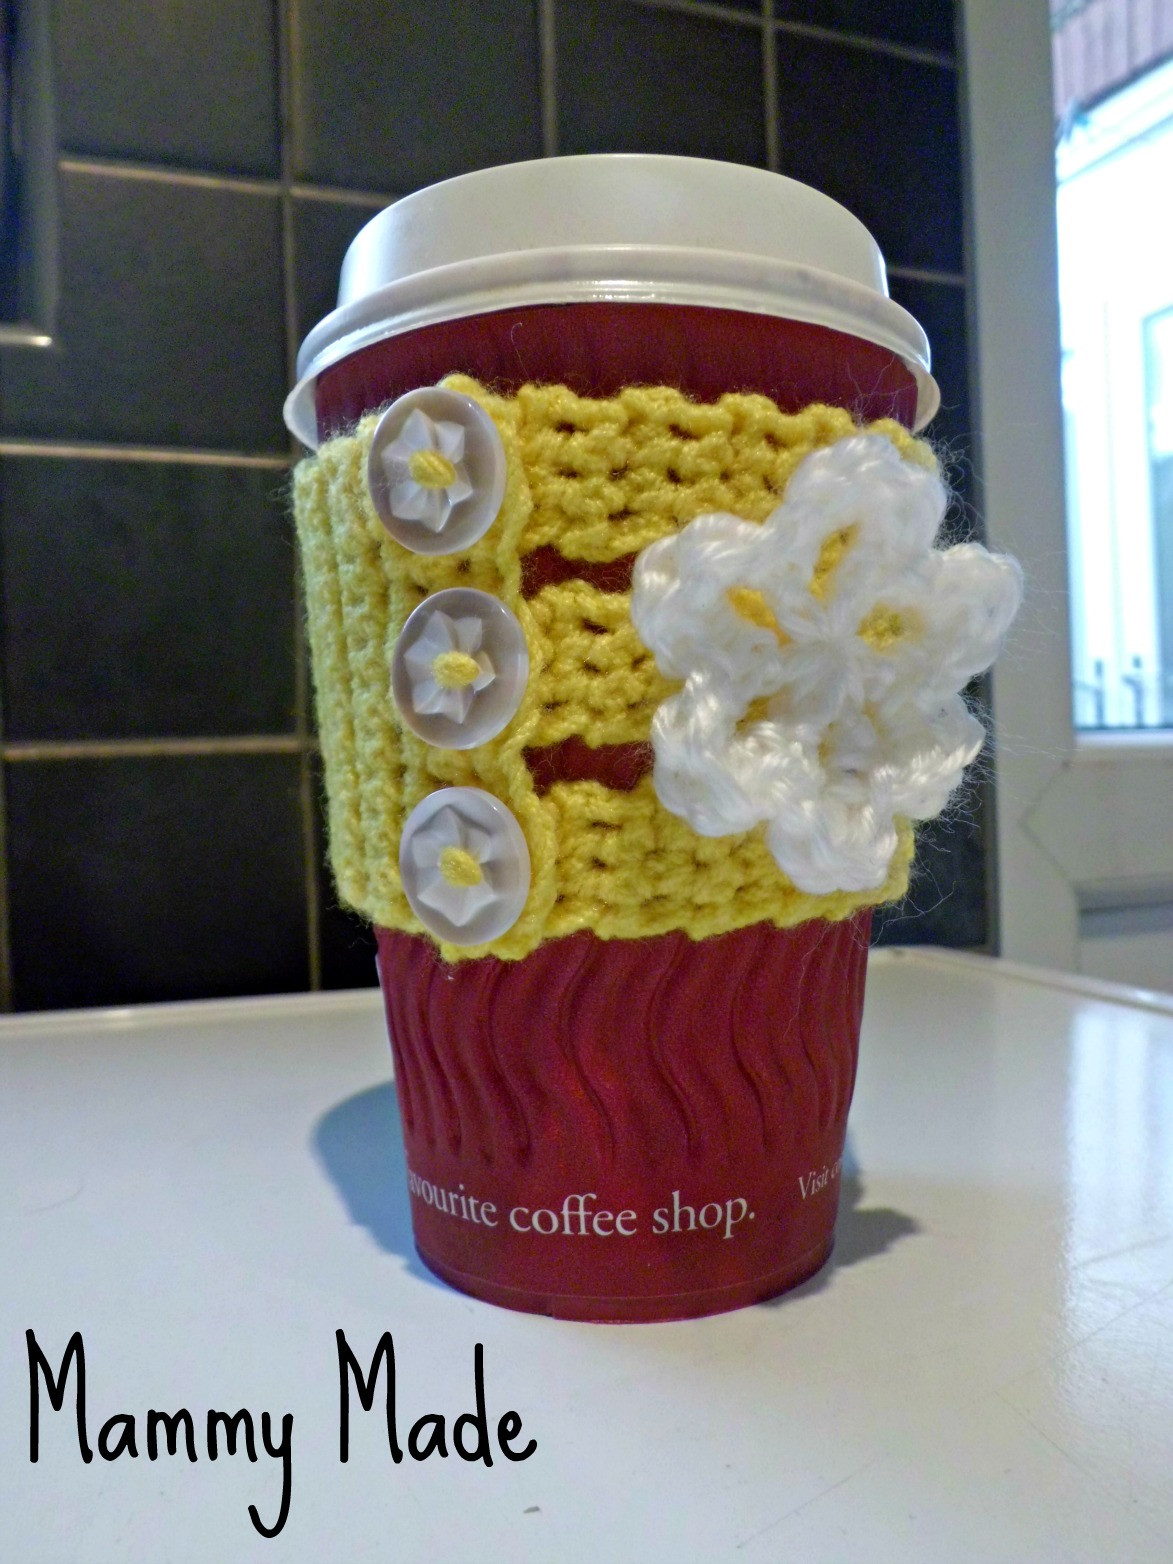 Best Of Mammy Made Crochet Coffee Cup Cozy Coffee Cup Cozy Of Awesome 47 Images Coffee Cup Cozy